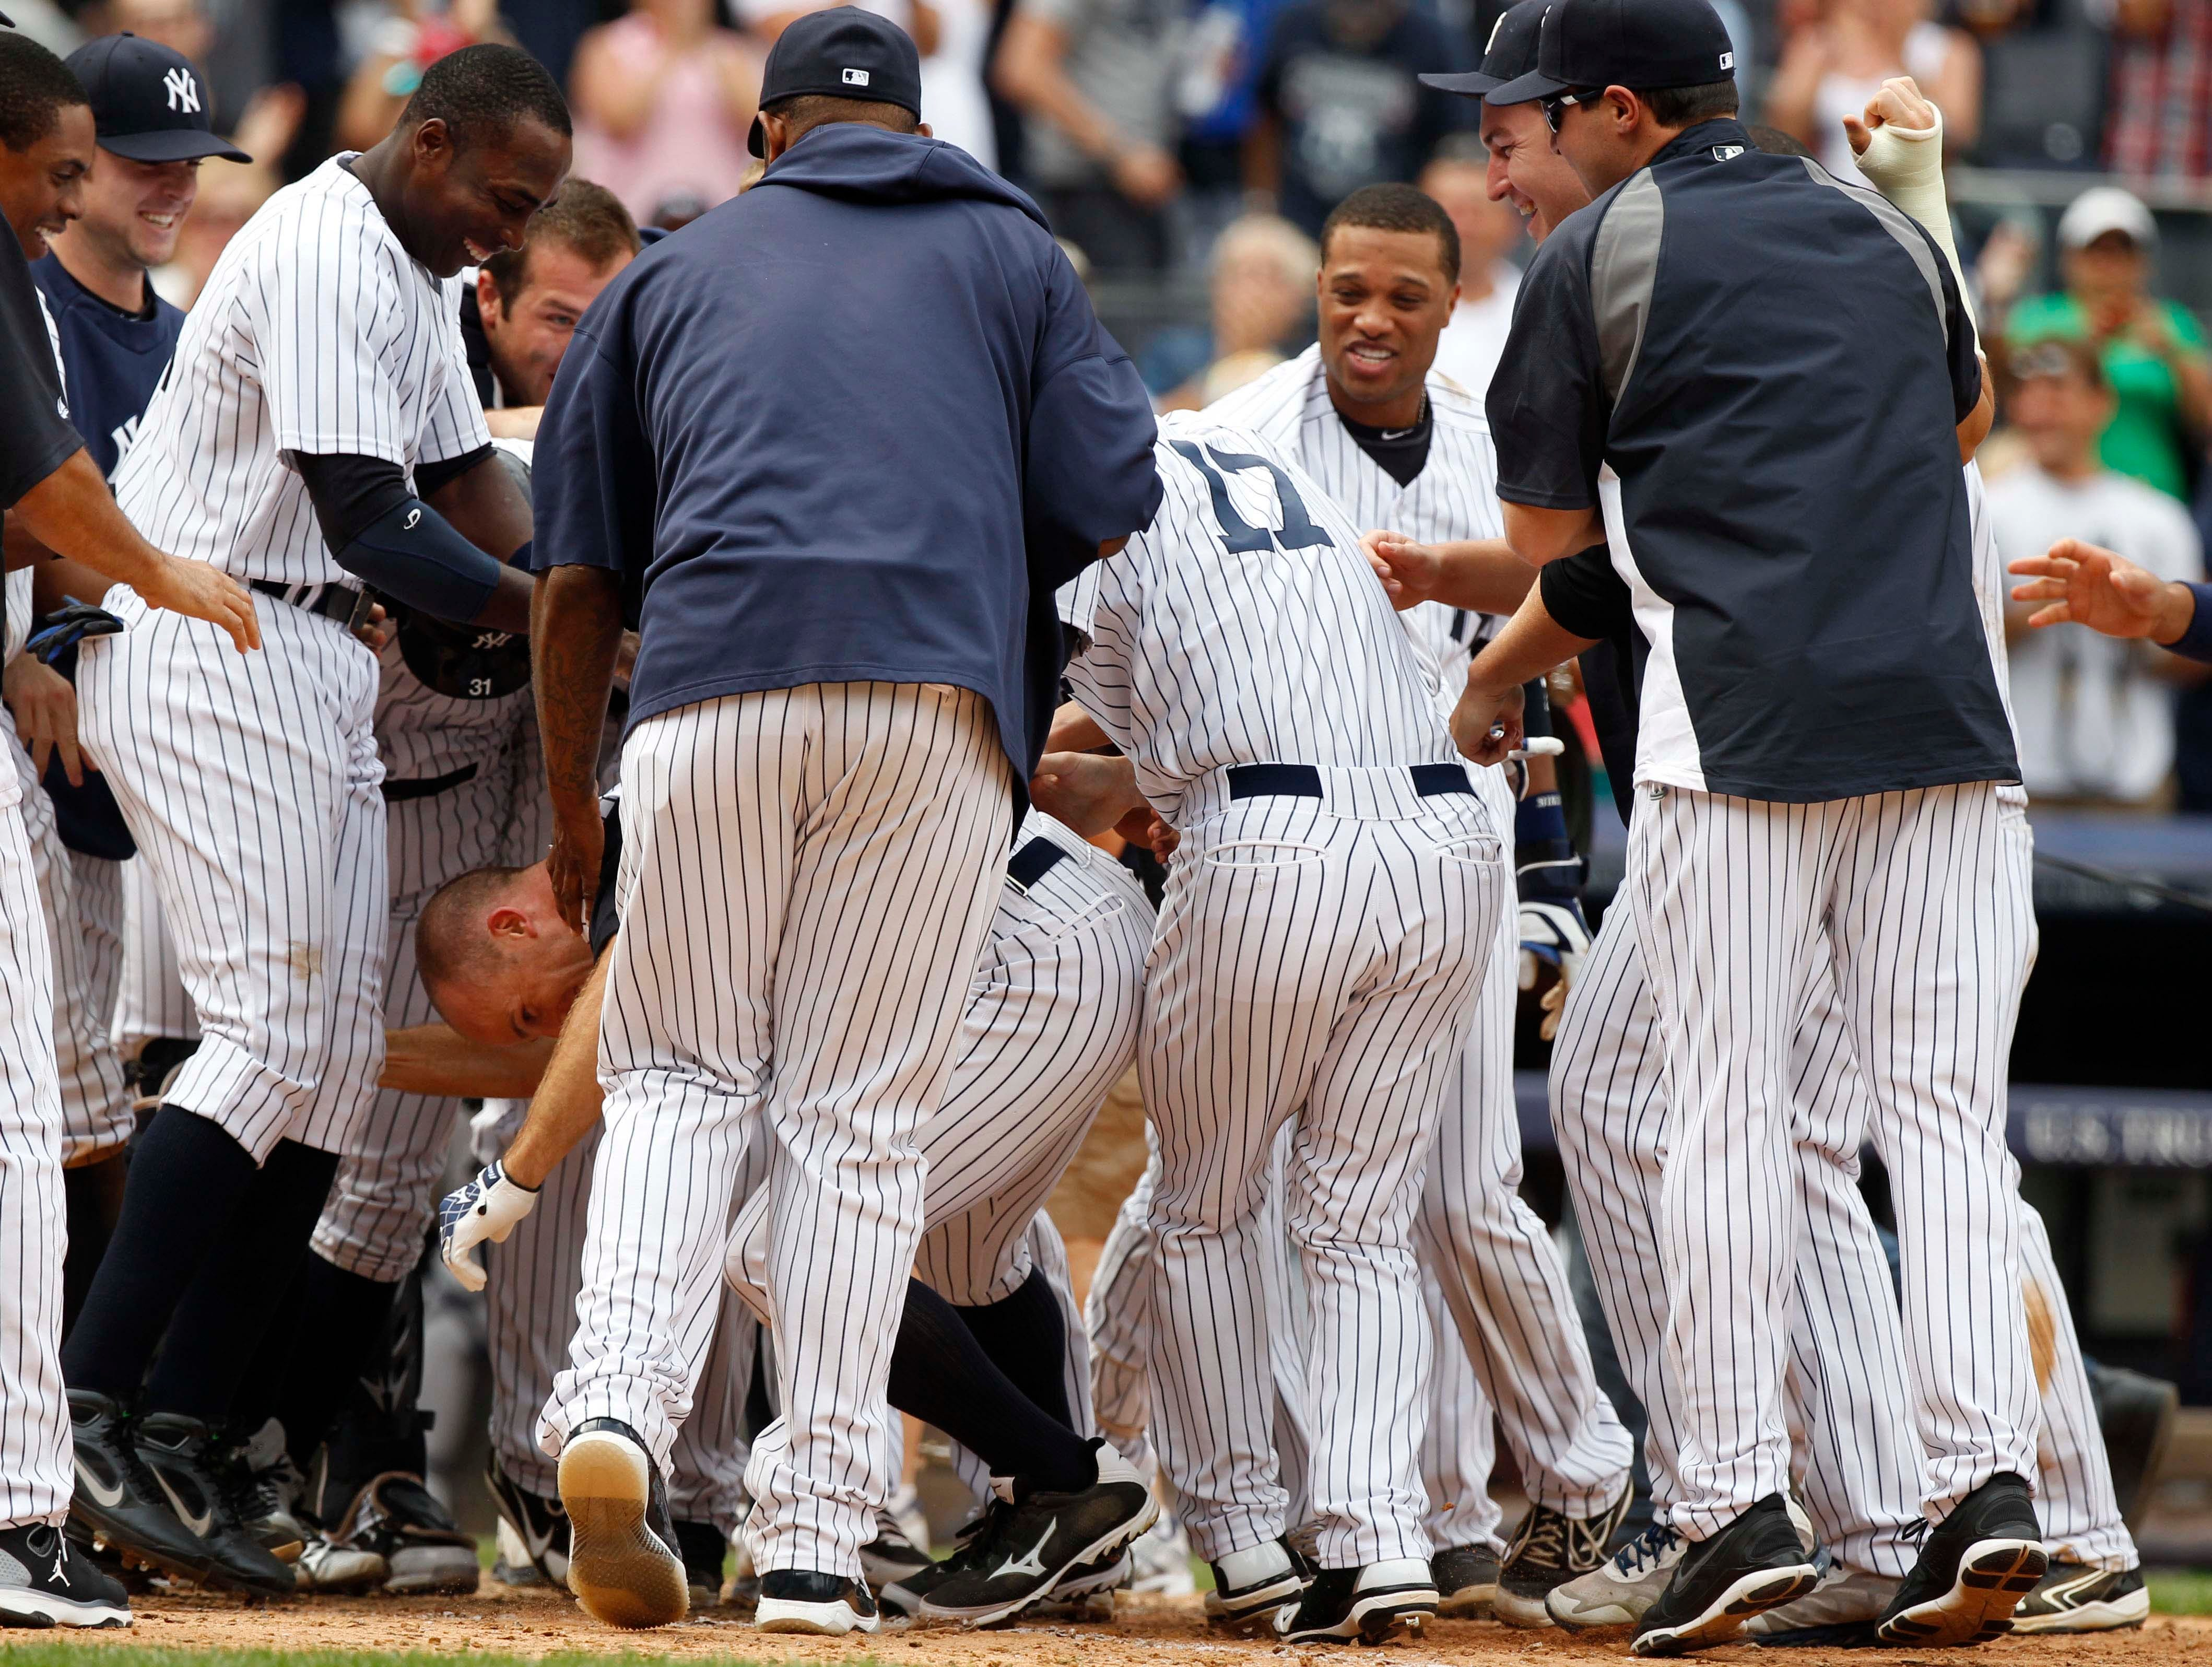 Aug. 11: Yankees center fielder Brett Gardner is mobbed at home plate by teammates after hitting a walk off home run against the Tigers at Yankee Stadium.